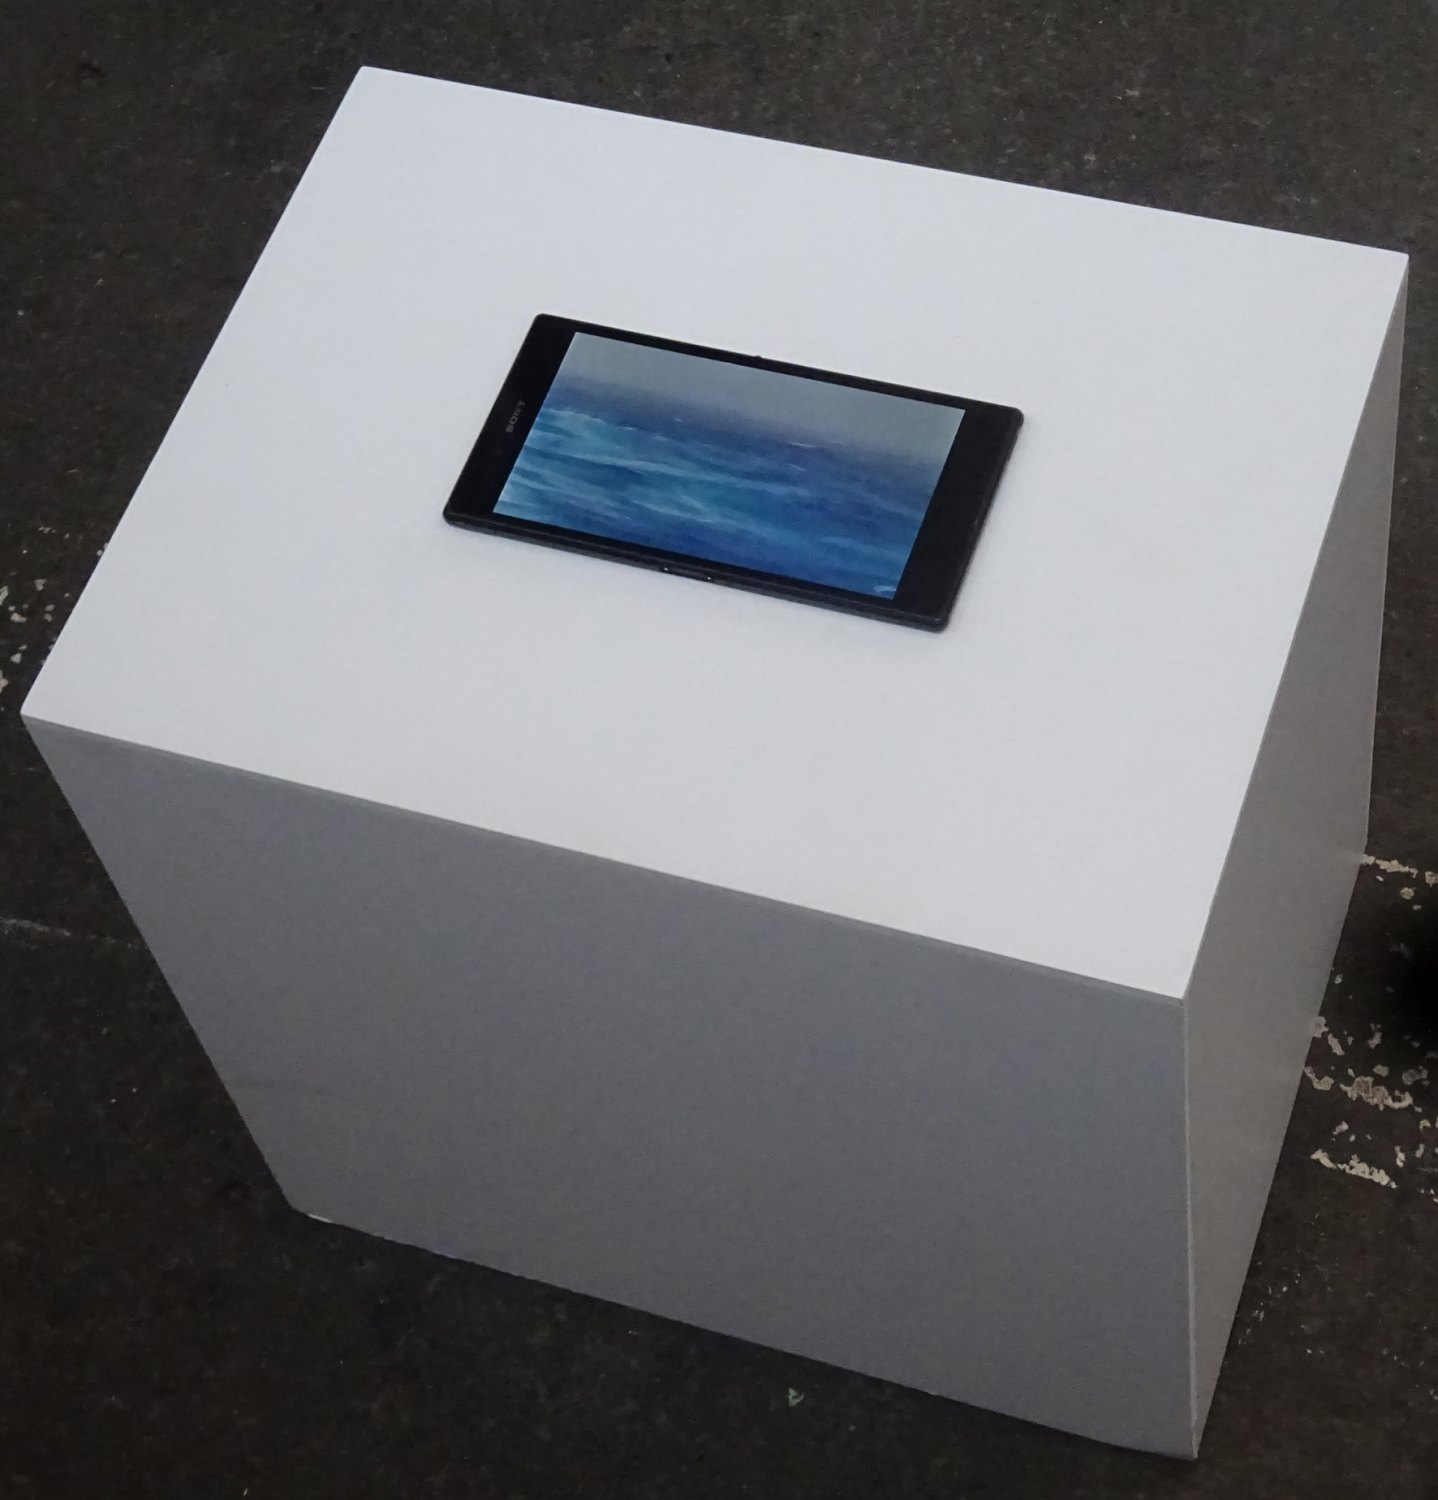 Sean Snyder Tableau Bateau, 2016 random video loop with audio on hacked Sony XPERIA Z Ultra, displayed on PVC structure, RAL 9003, 40 cm high x 40 cm wide x 30 cm deep